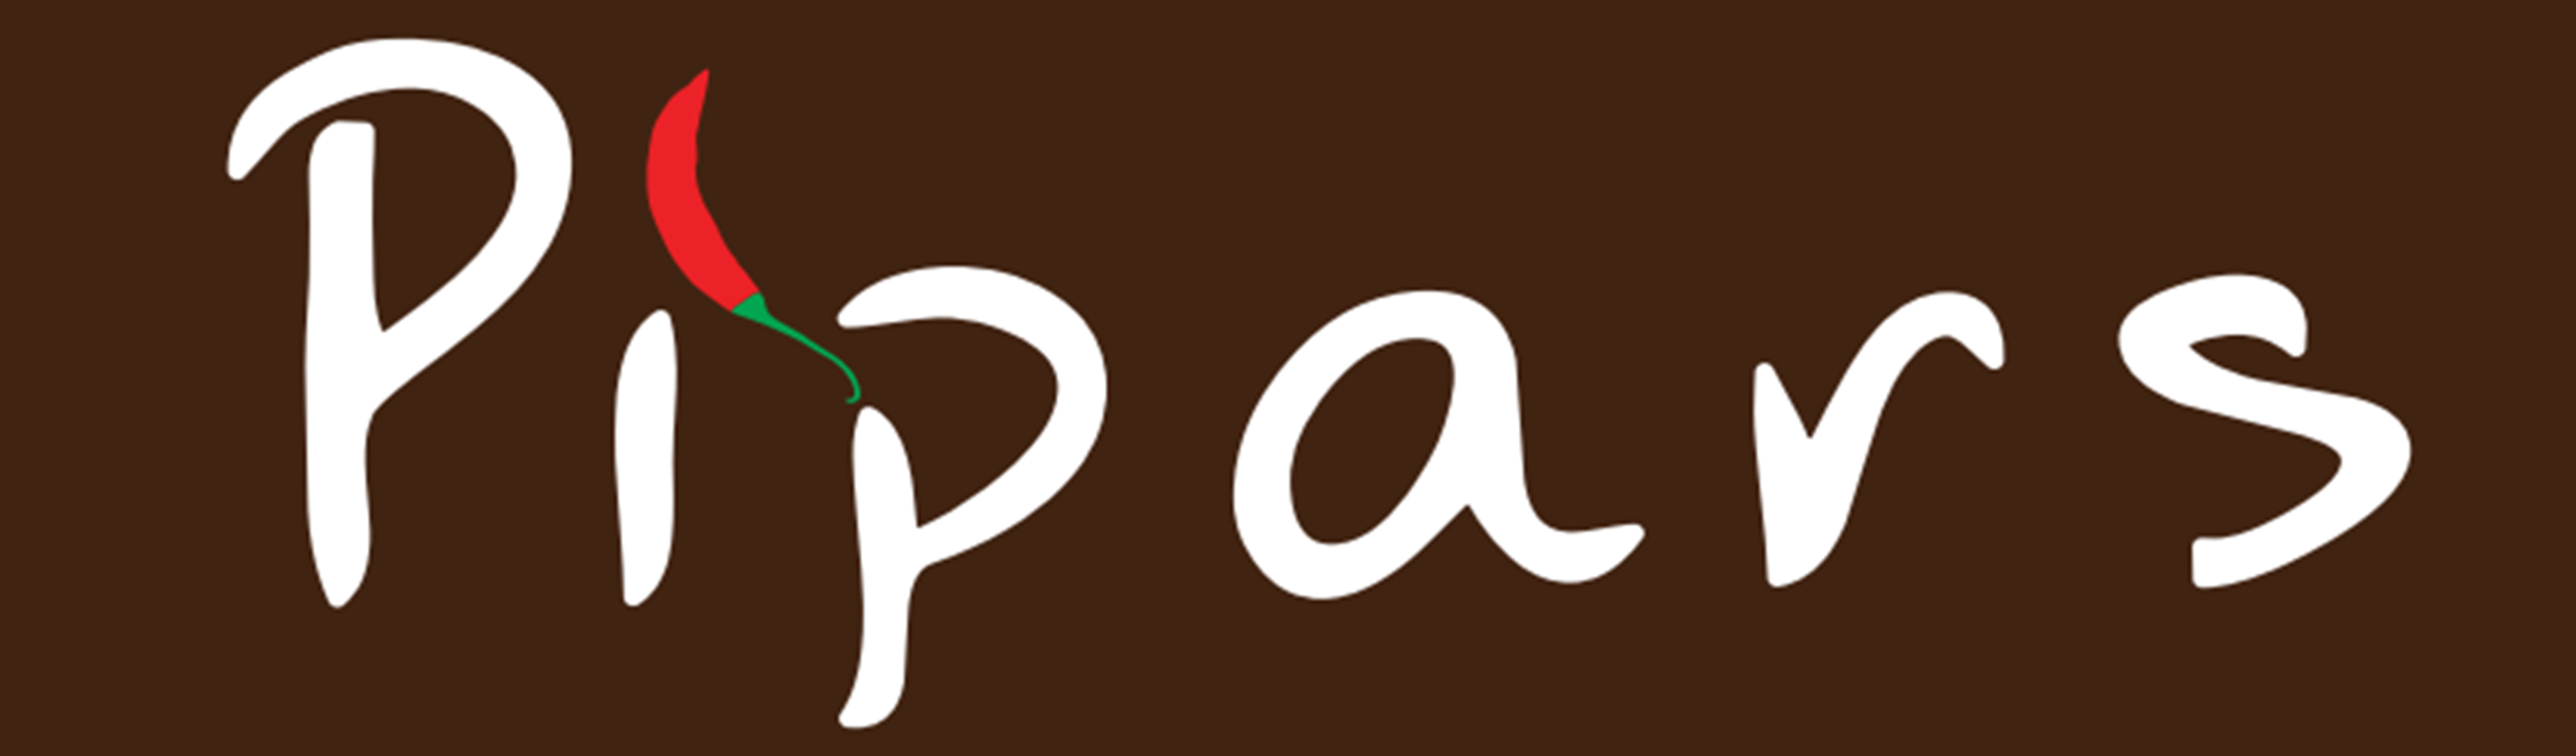 Pipars